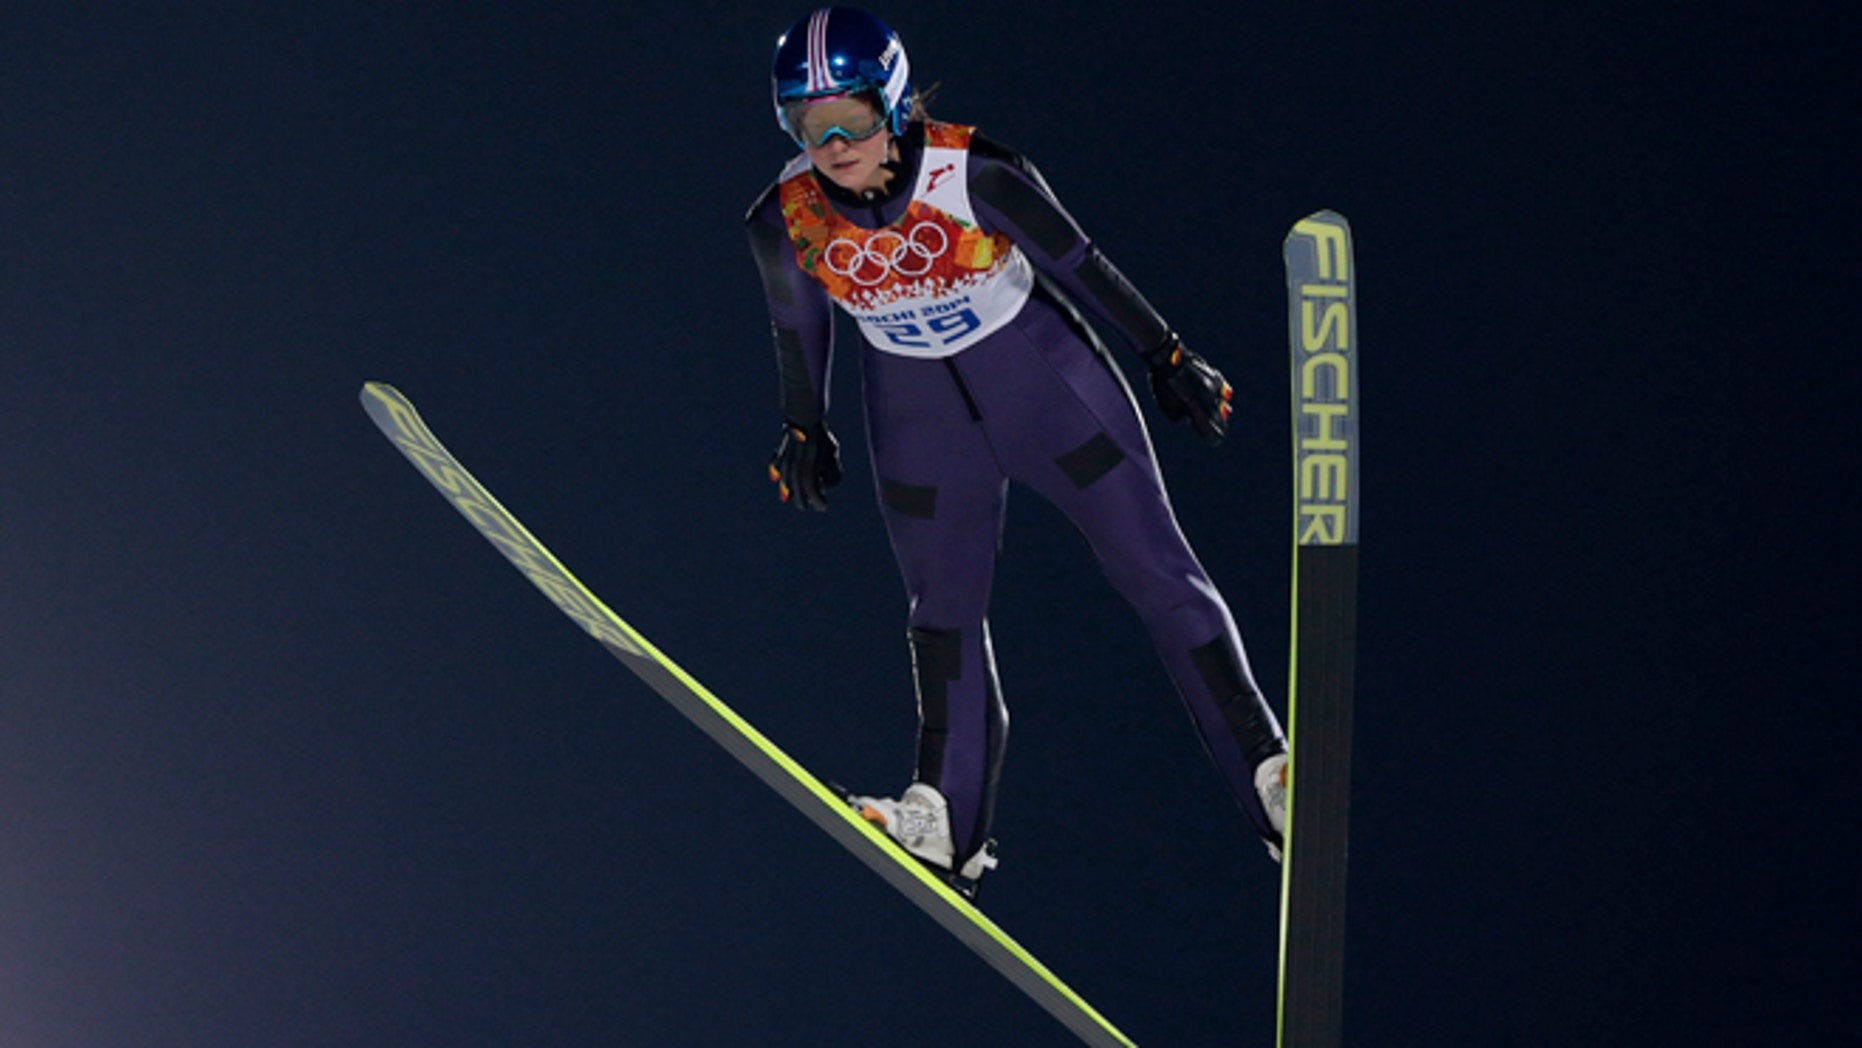 Feb. 11, 2014: Germany's Carina Vogt makes her trial jump in the women's ski jumping normal hill final at the 2014 Winter Olympics in Krasnaya Polyana, Russia.